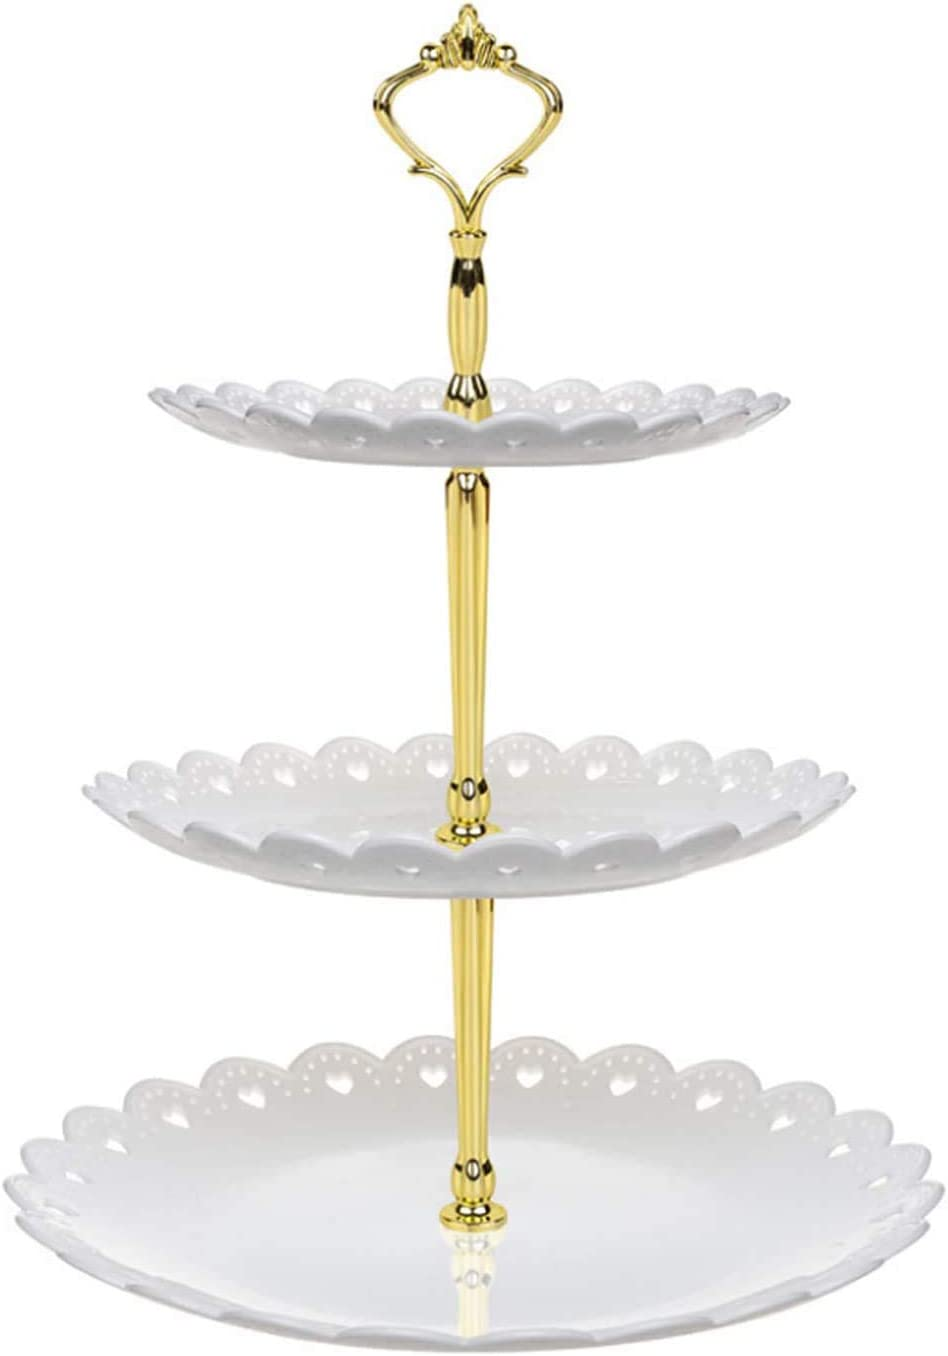 Cupcake Stand Plastic Three Tiered Party Serving Stand, Dessert Tower Tray Fruits Desserts Plates for Tea Birthday Party Wedding